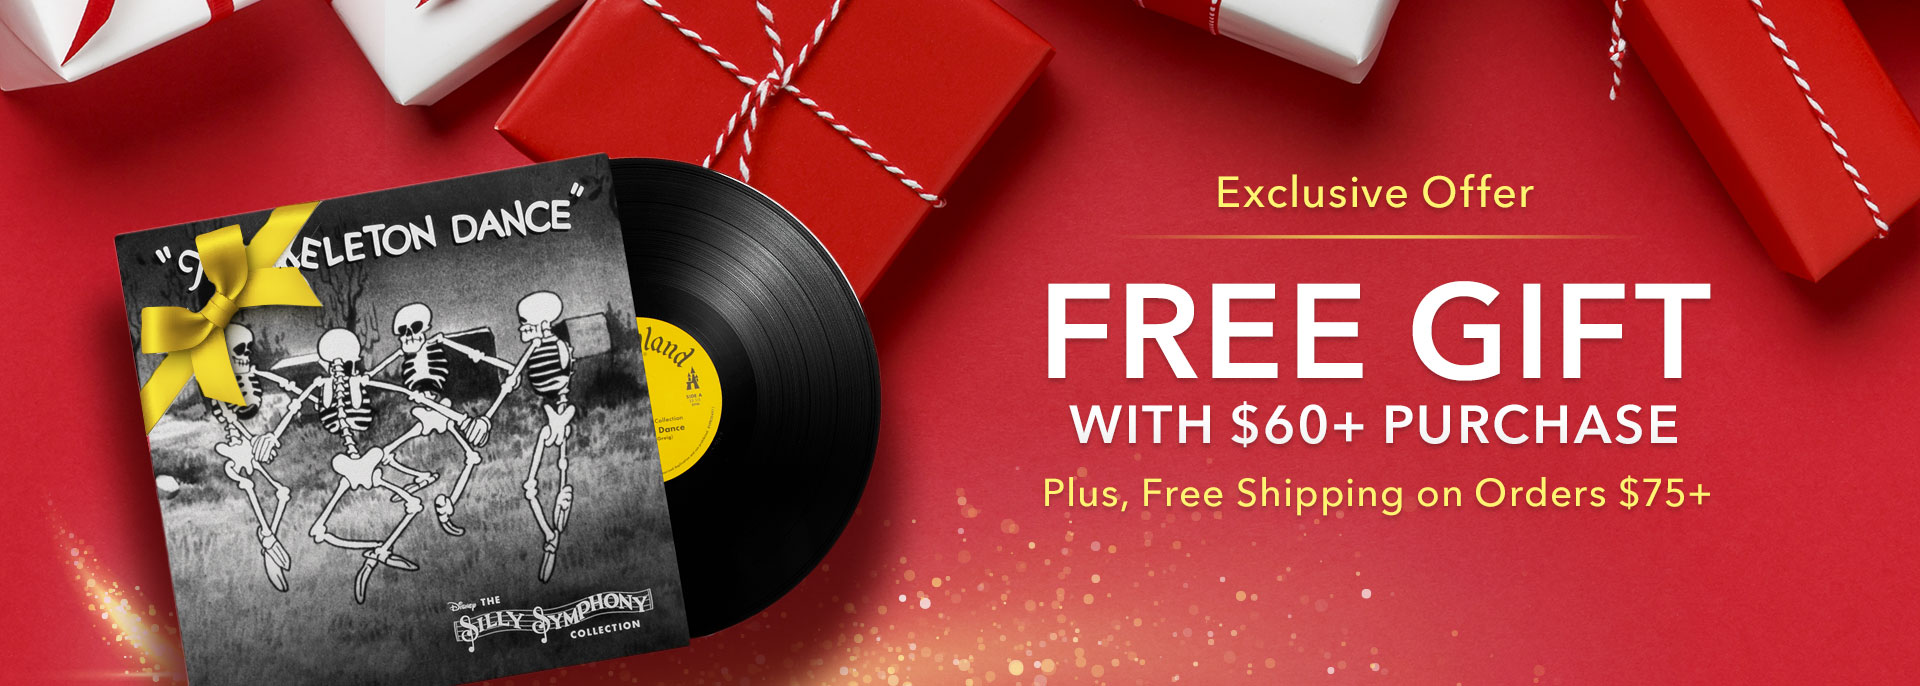 Free Exclusive Gift With Purchase!